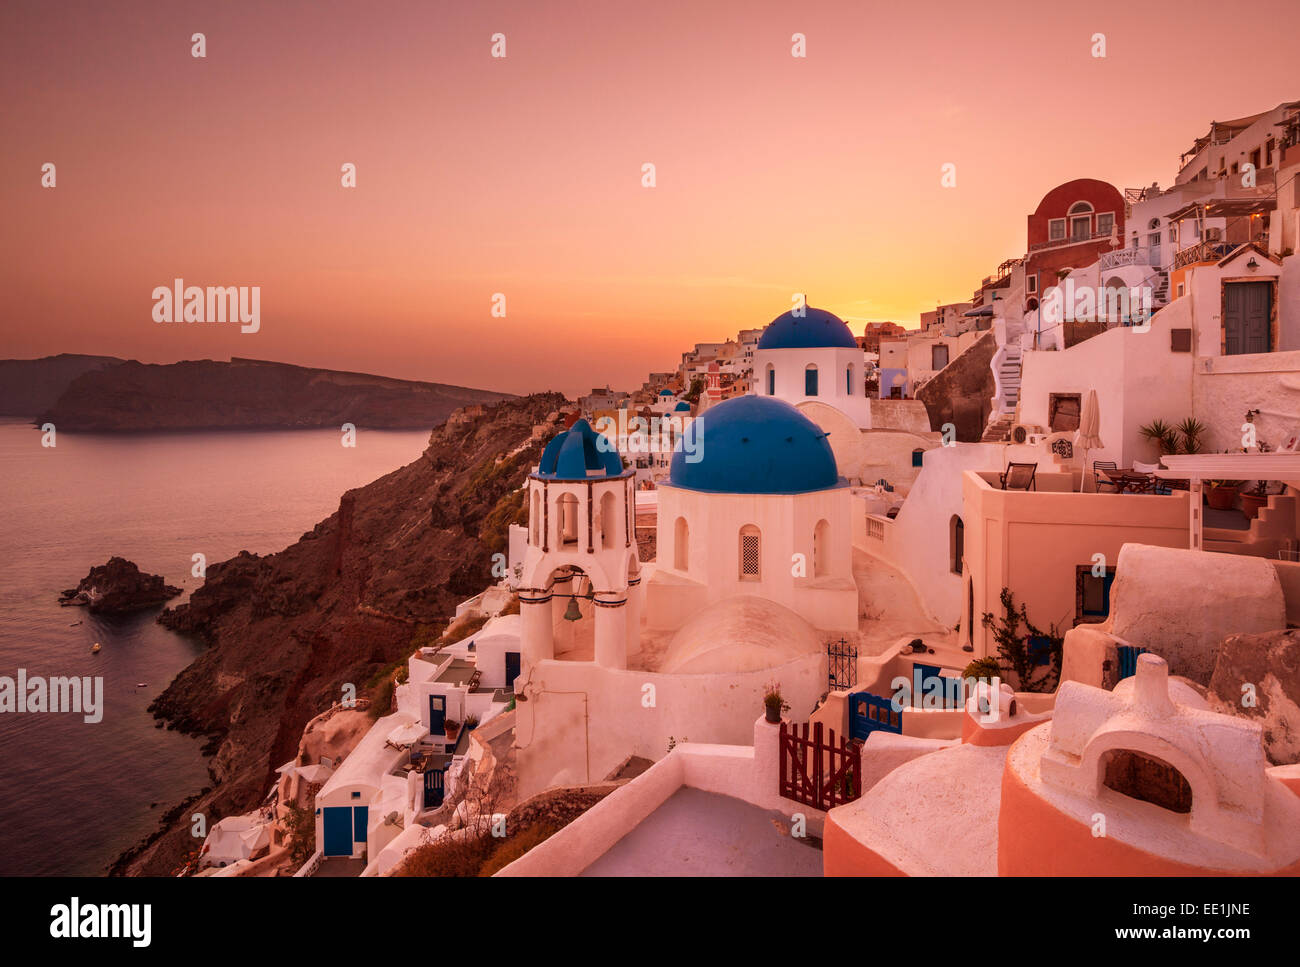 Greek church with three blue domes at sunset, Oia, Santorini (Thira), Cyclades Islands, Greek Islands, Greece, Europe - Stock Image